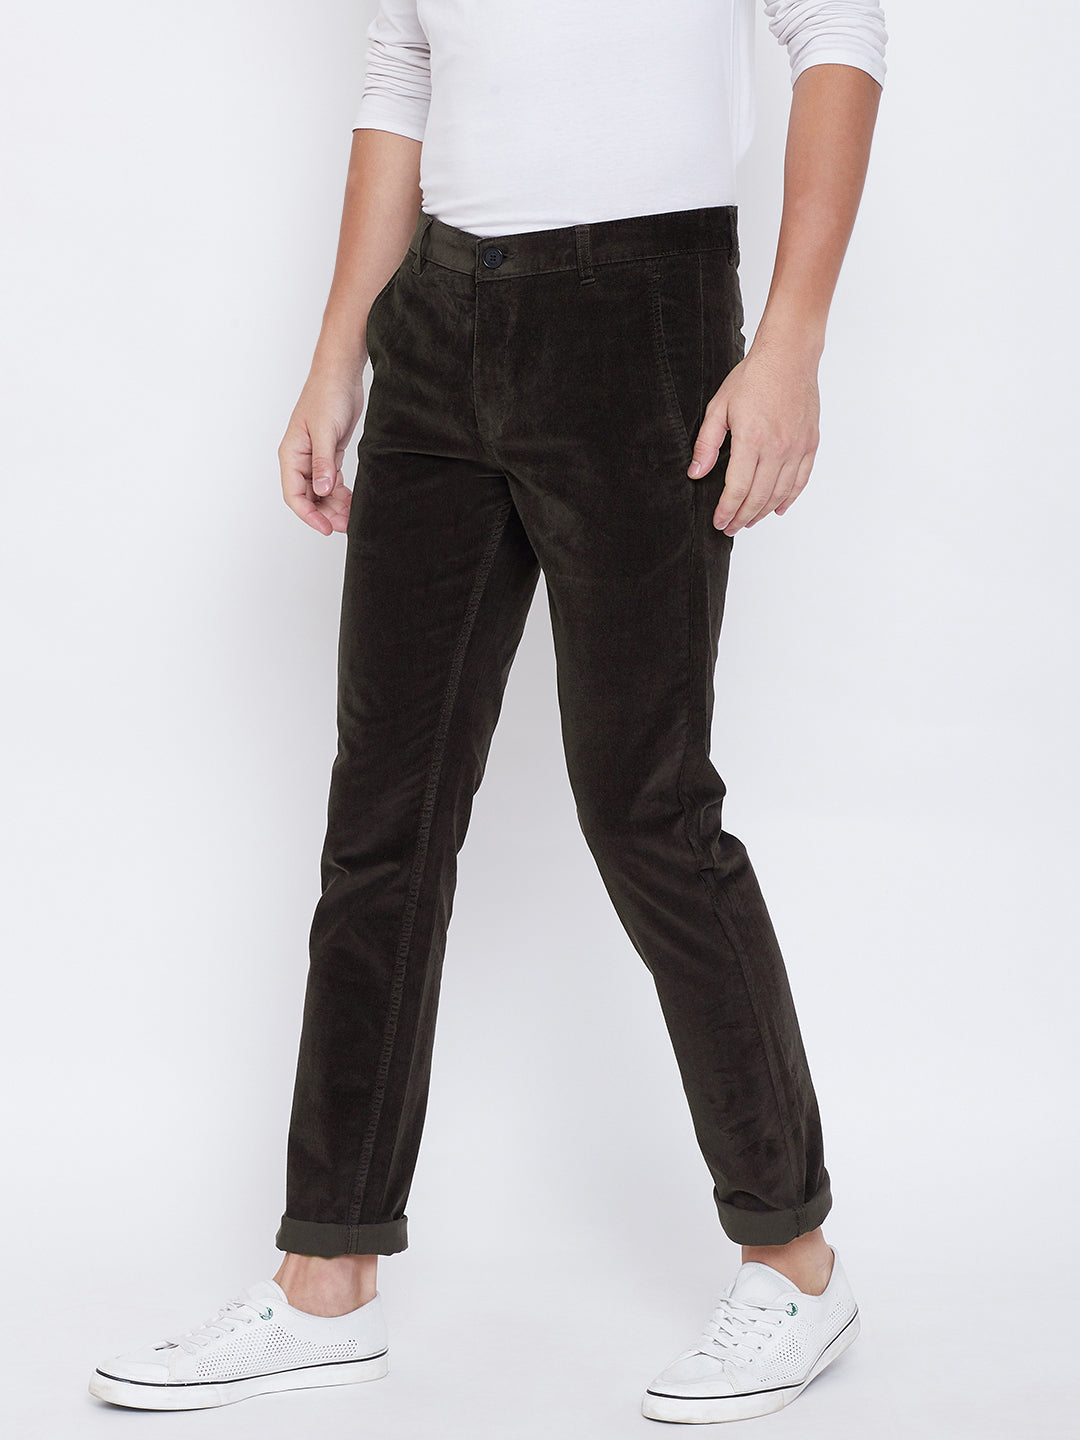 Octave Apparels Olive Pant for Men